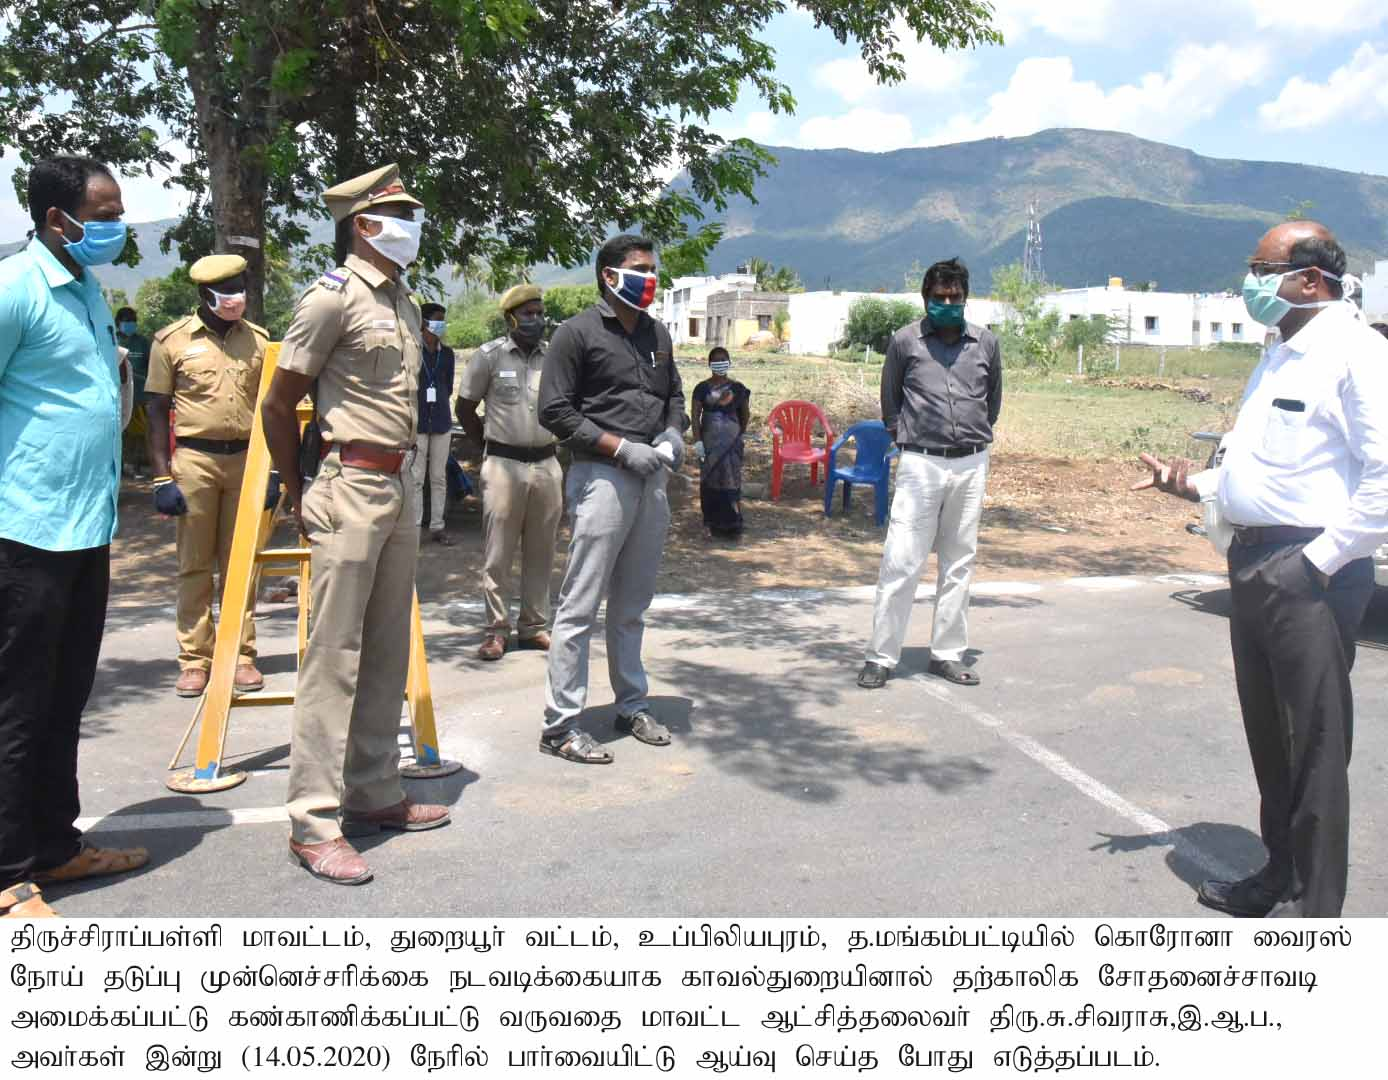 District Collector Inspected the Covid-19 Preventive activities at Thuraiyur Taluk